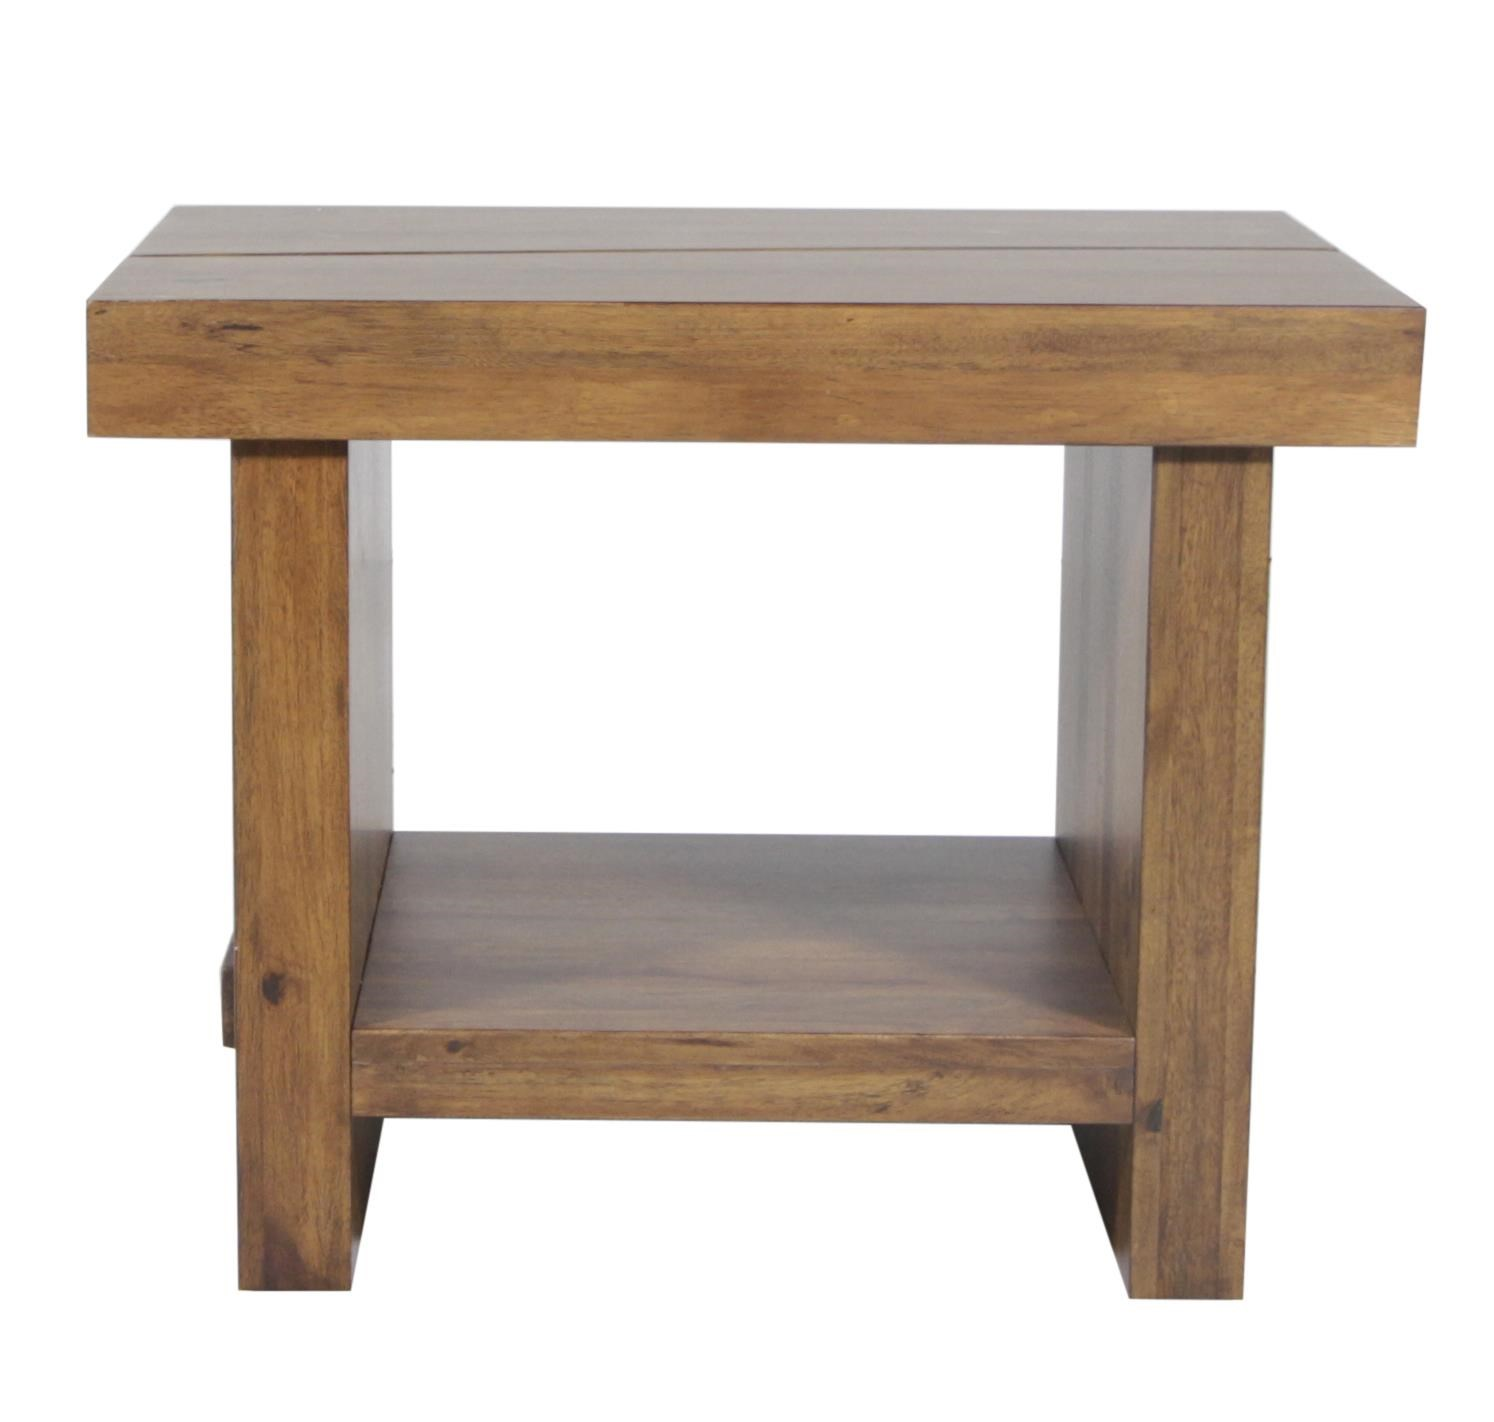 Modus International Ocean Side Table - Item Number: 8C-79-22